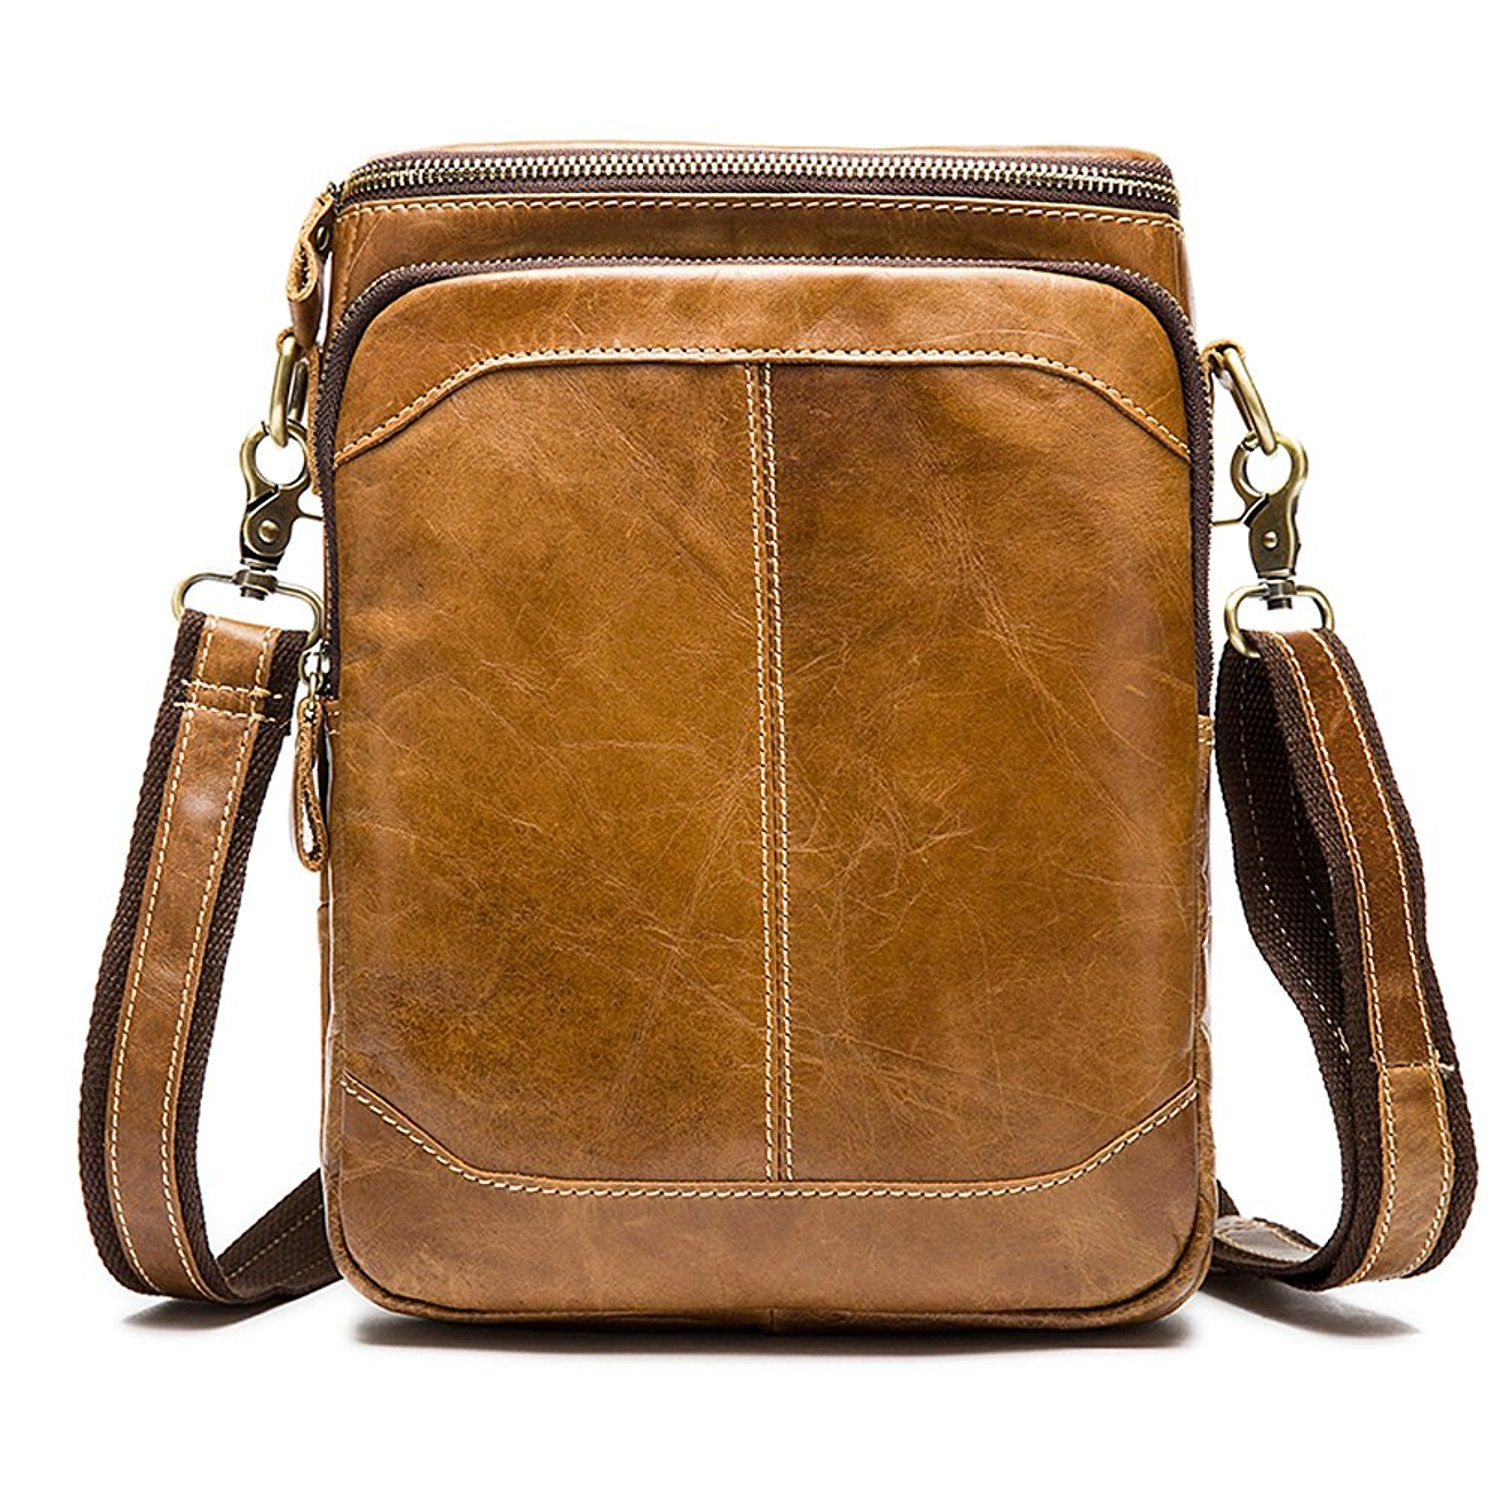 Men/'s New Leather Vintage Small Handbag Casual Travel Cross-body Tote Bag